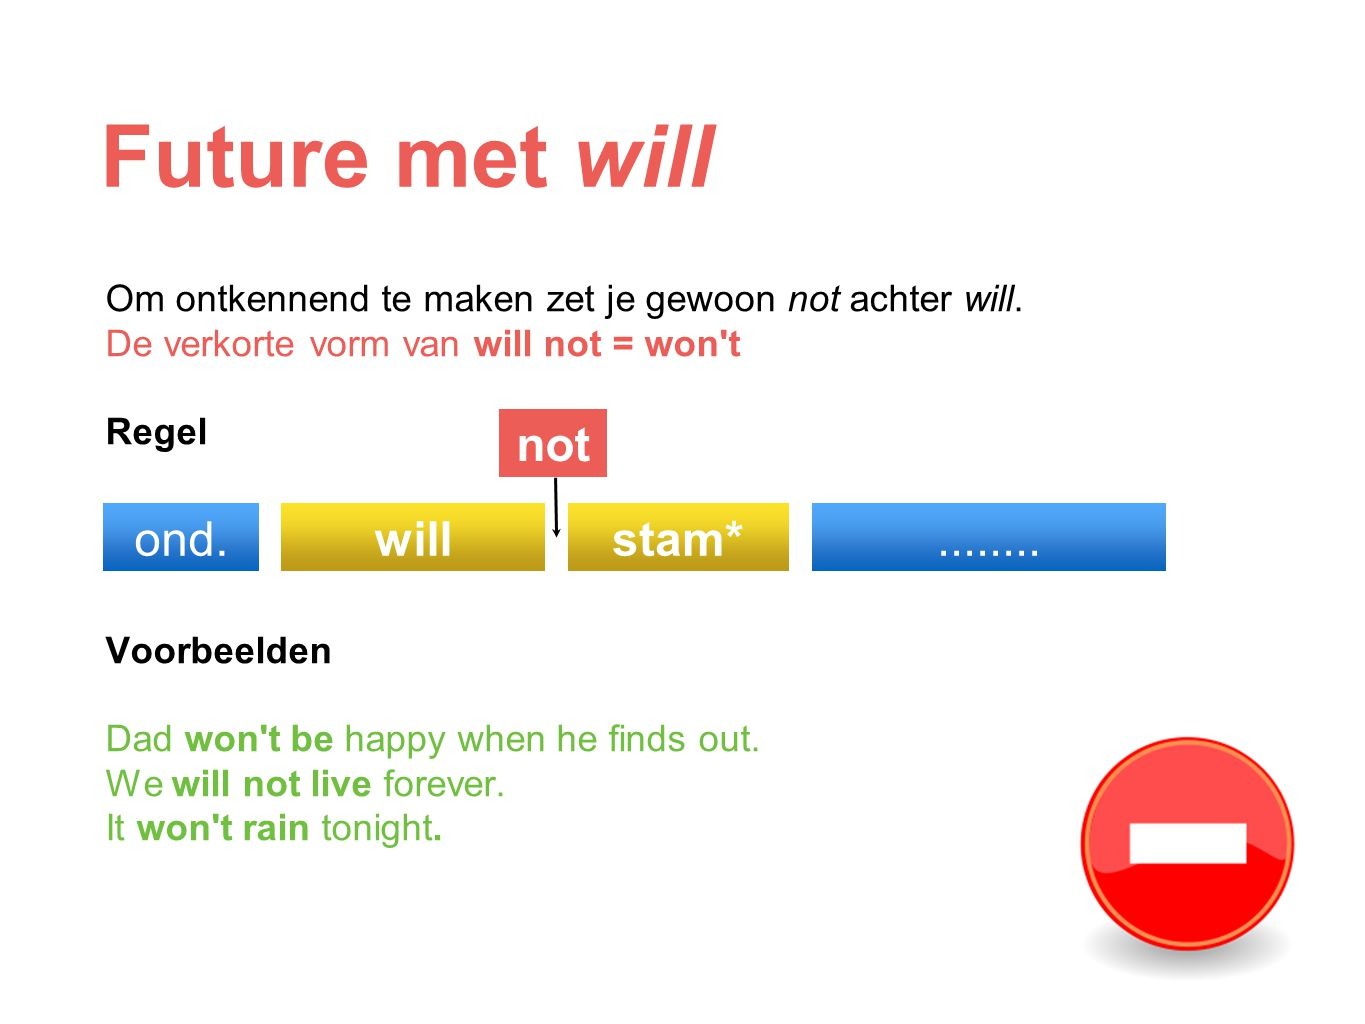 Future met will not ond. will stam* ........